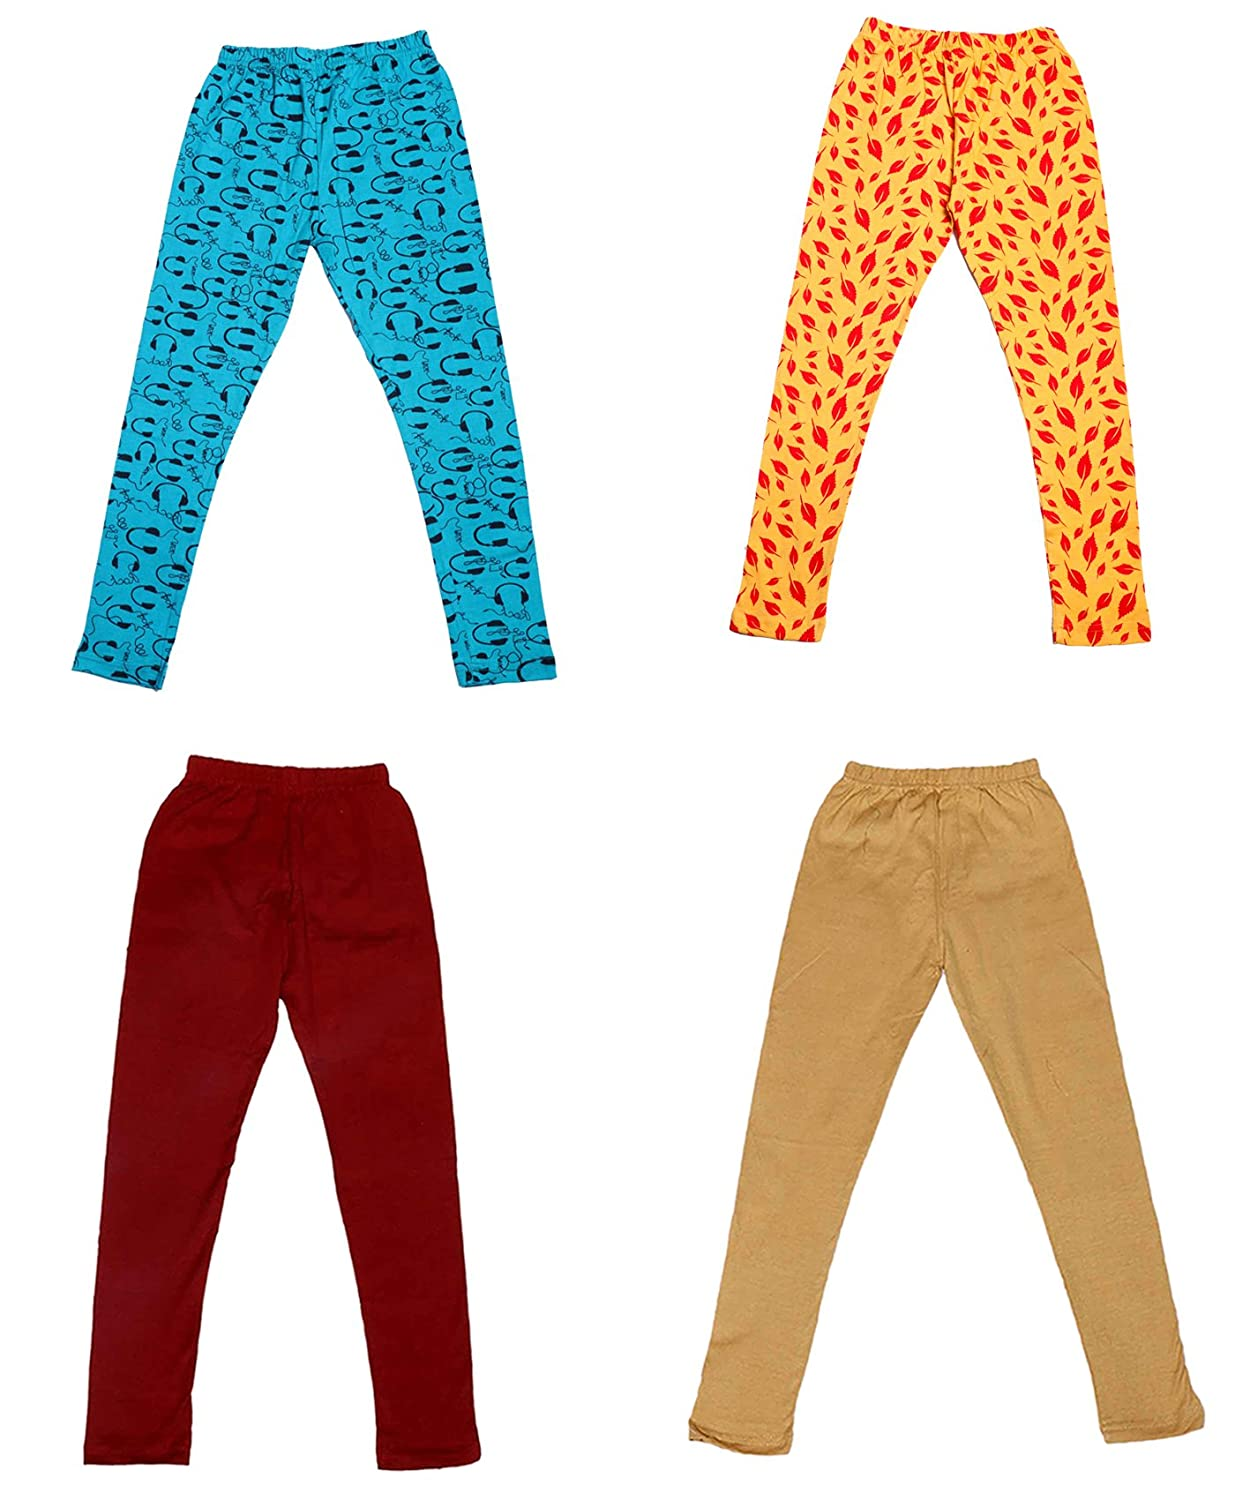 /_Multicolor/_Size-3-5 Years/_71400011718-IW-P4-24 Pack Of 4 Indistar Girls 2 Cotton Solid Legging Pants and 2 Cotton Printed Legging Pants